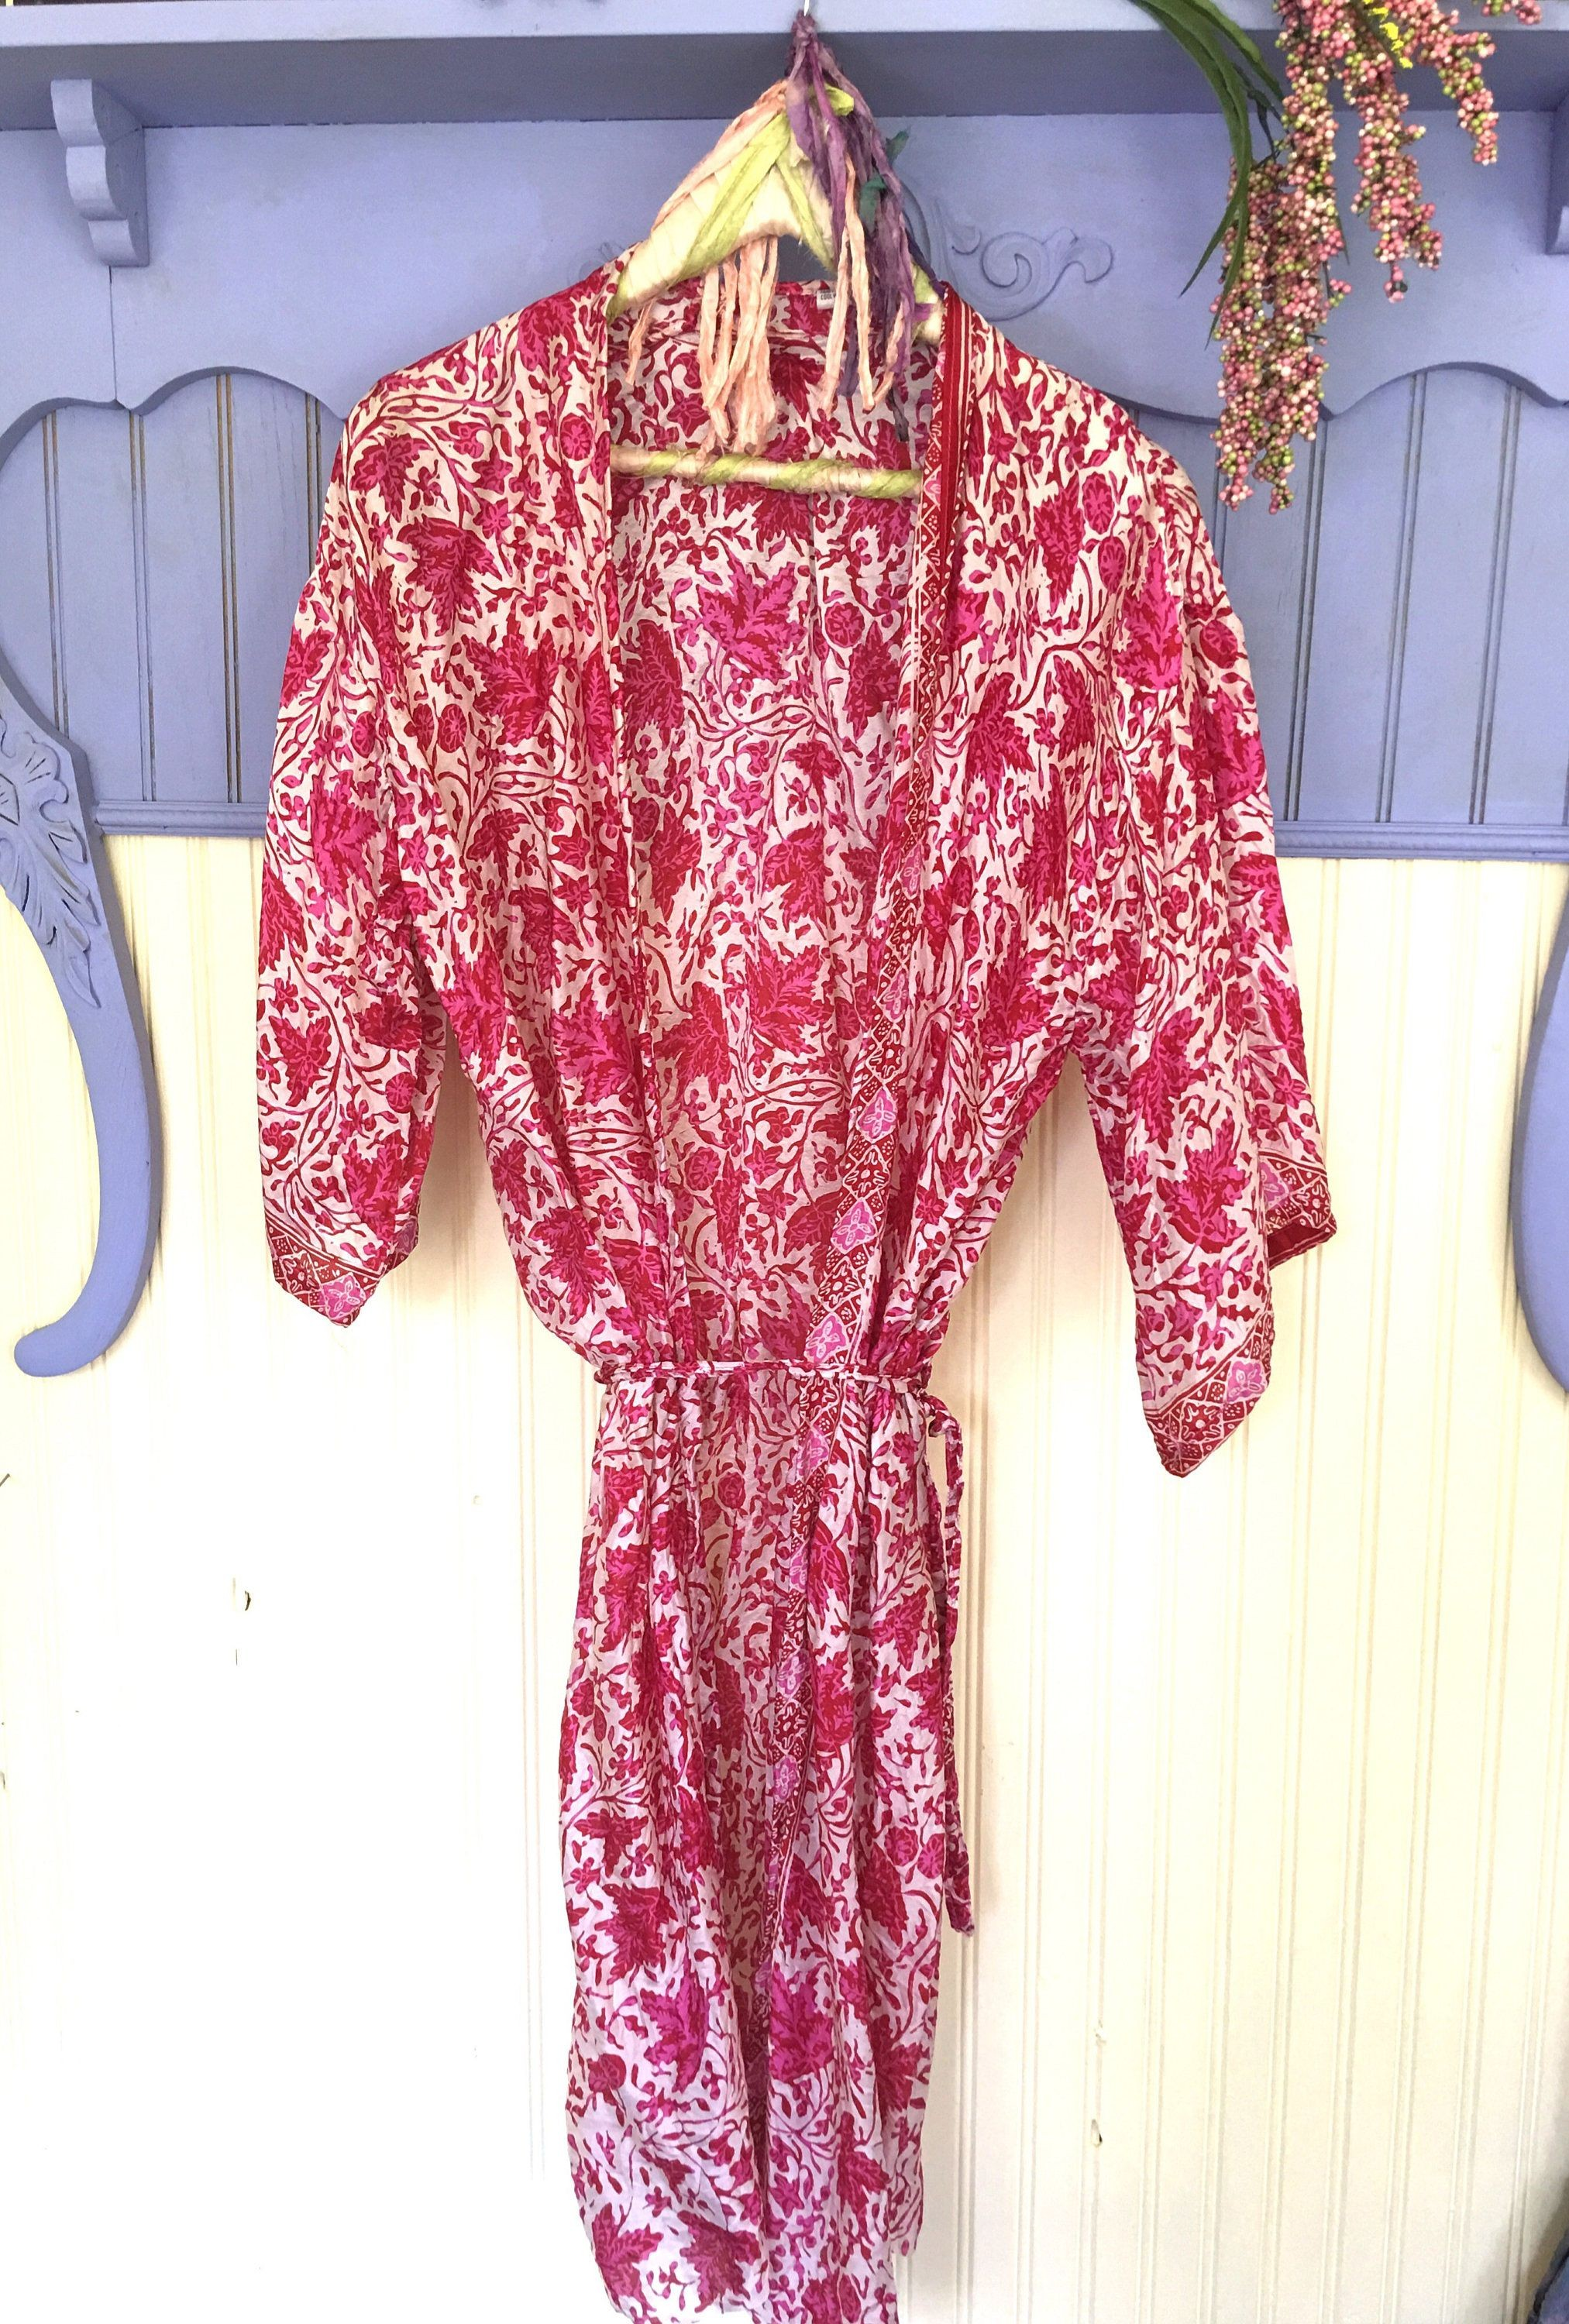 Ubud Bali Red and Pink Balinese Silk Robe by peacefulnomaddesign on Etsy